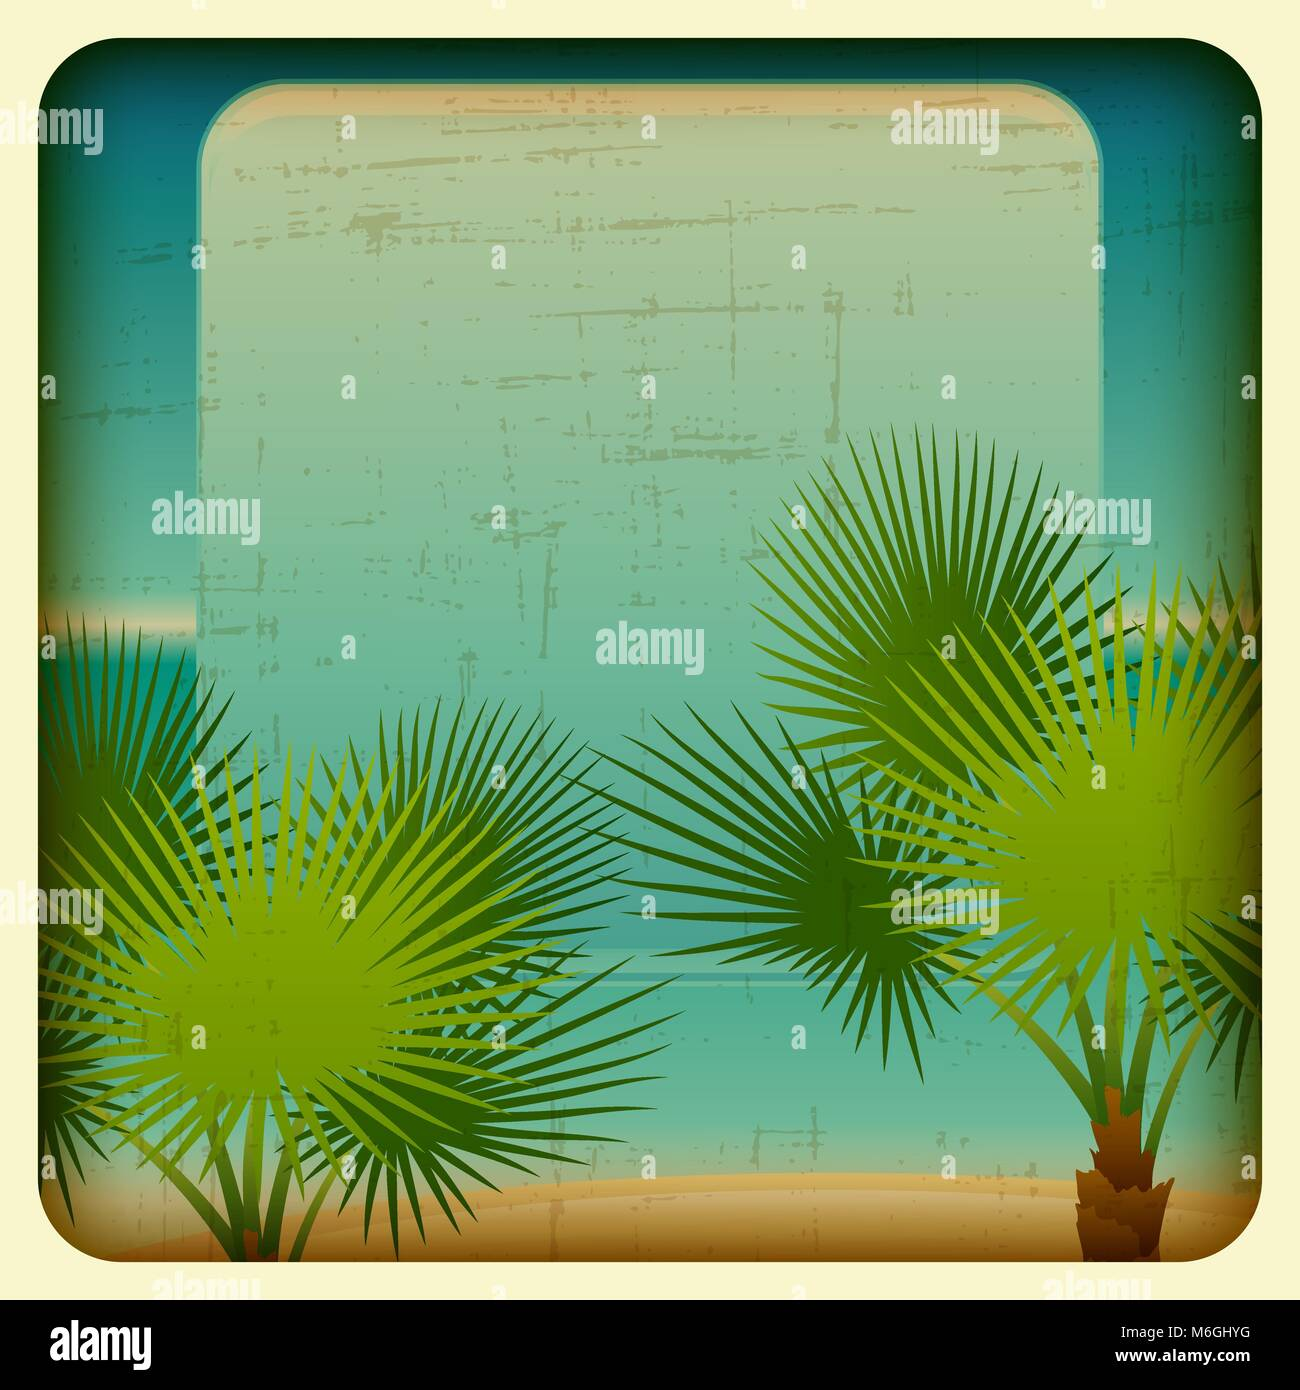 Retro background with seaside and palm trees - Stock Vector